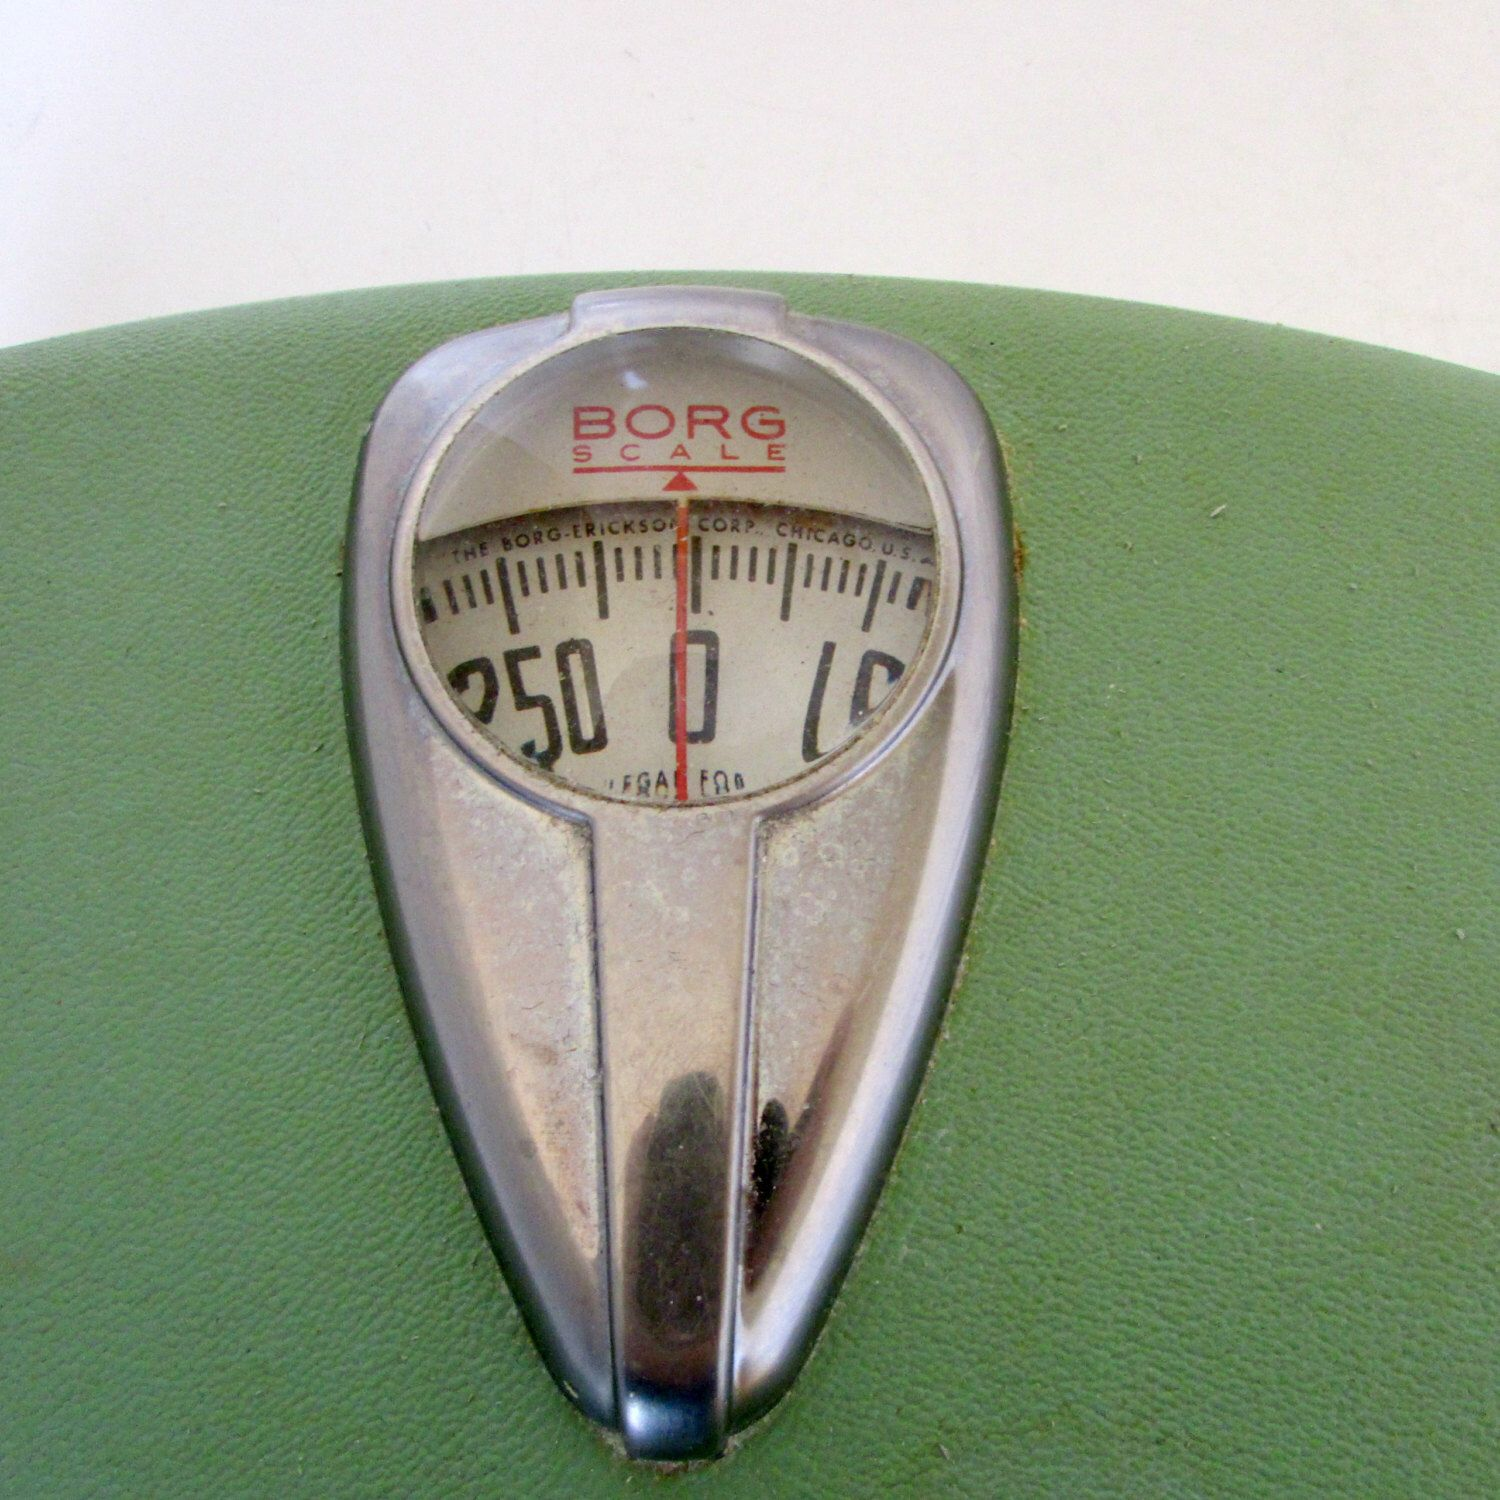 Vintage Bathroom Scale Borg 1940s Green Bath Decor Art Deco By Nanascottagehouse On Etsy Https